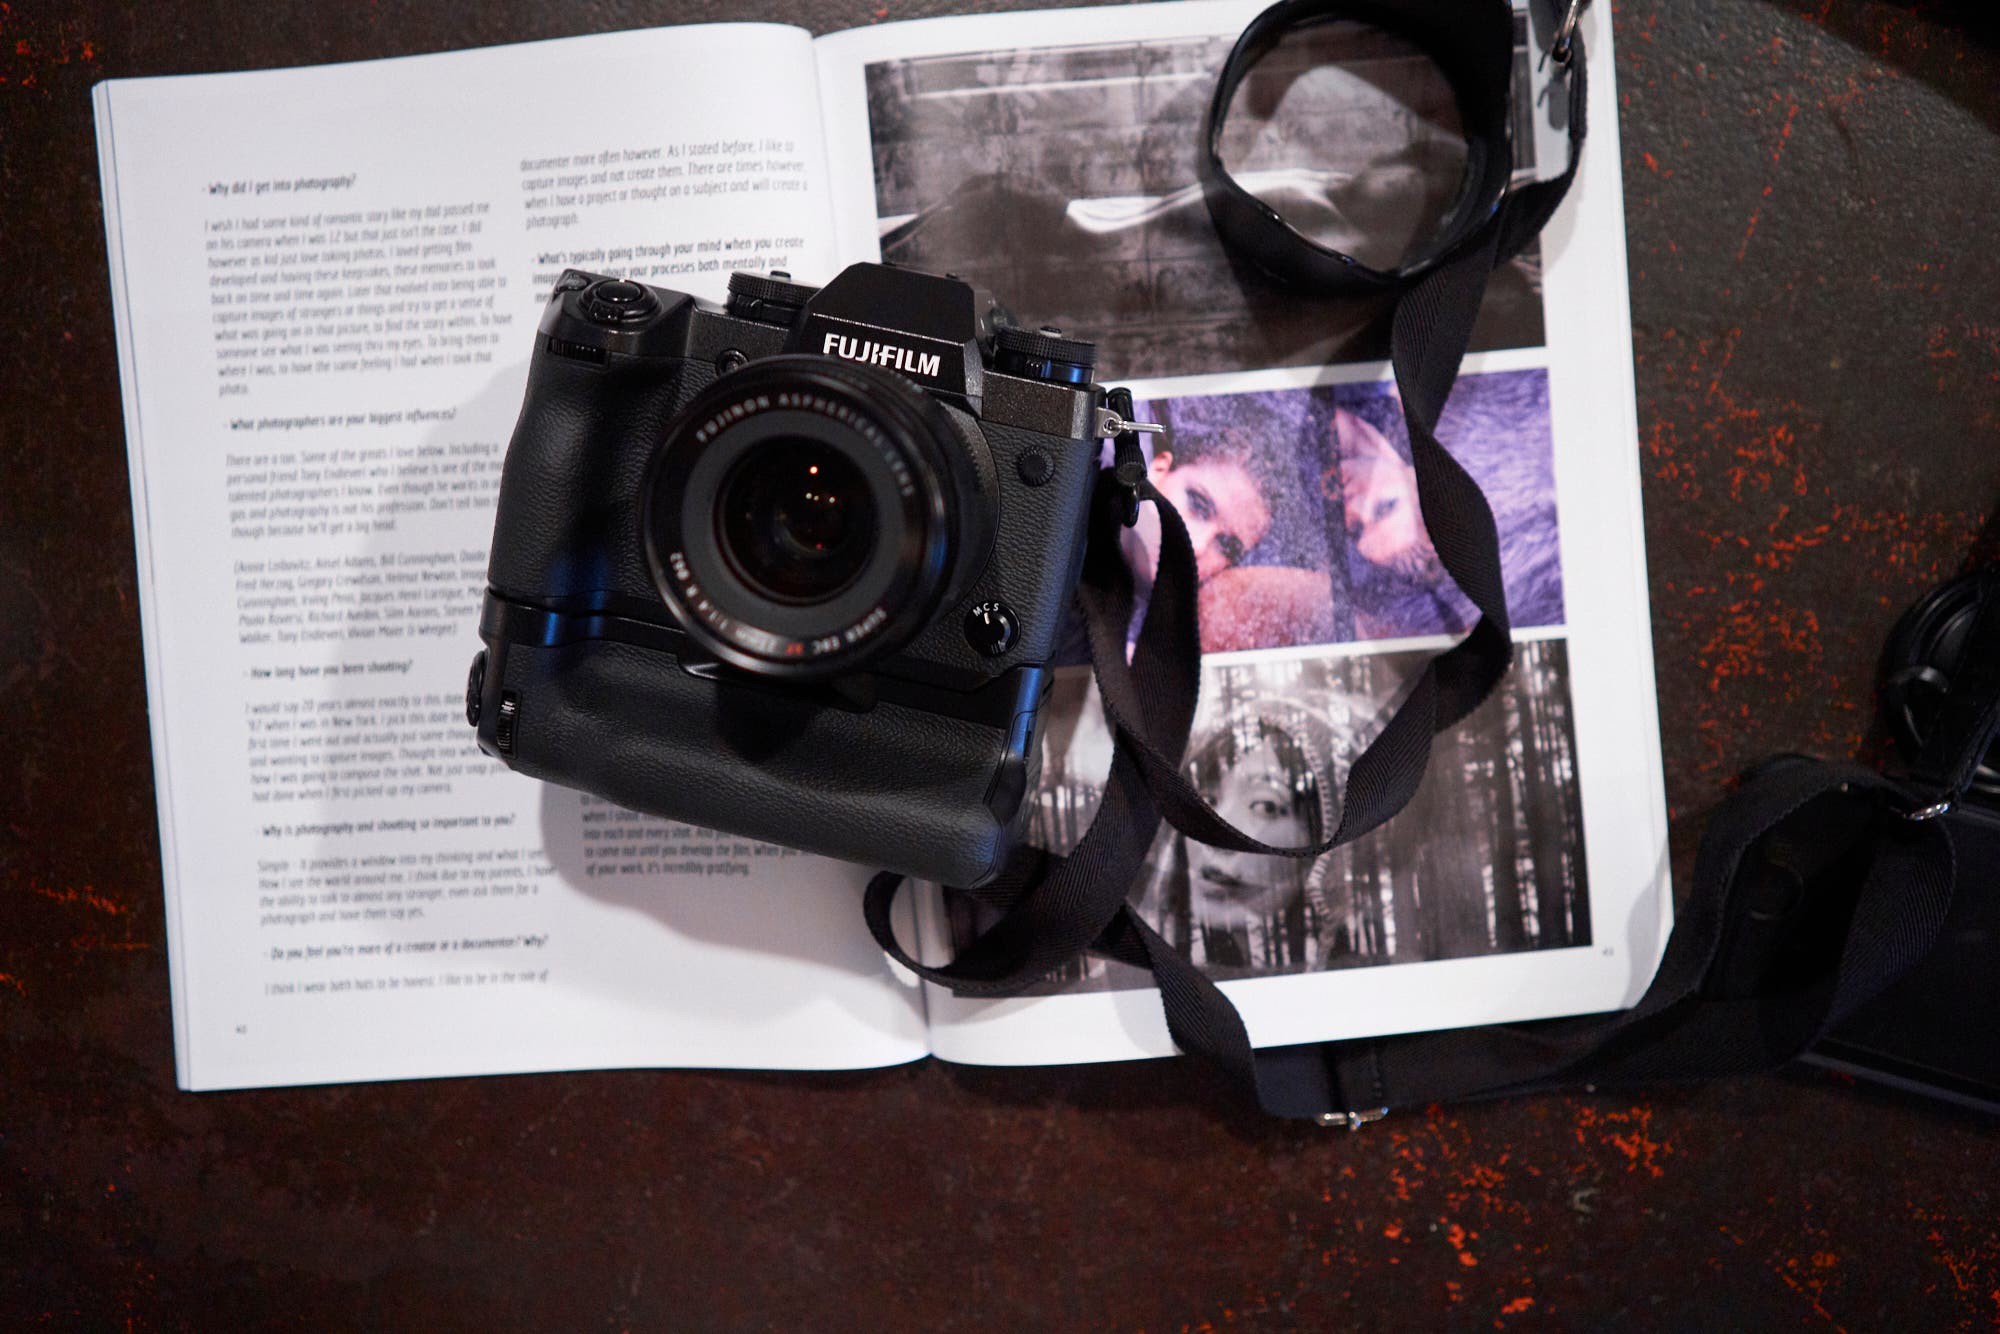 Review: Fujifilm X-H1 (The Perfect Fuji With a Big Problem)